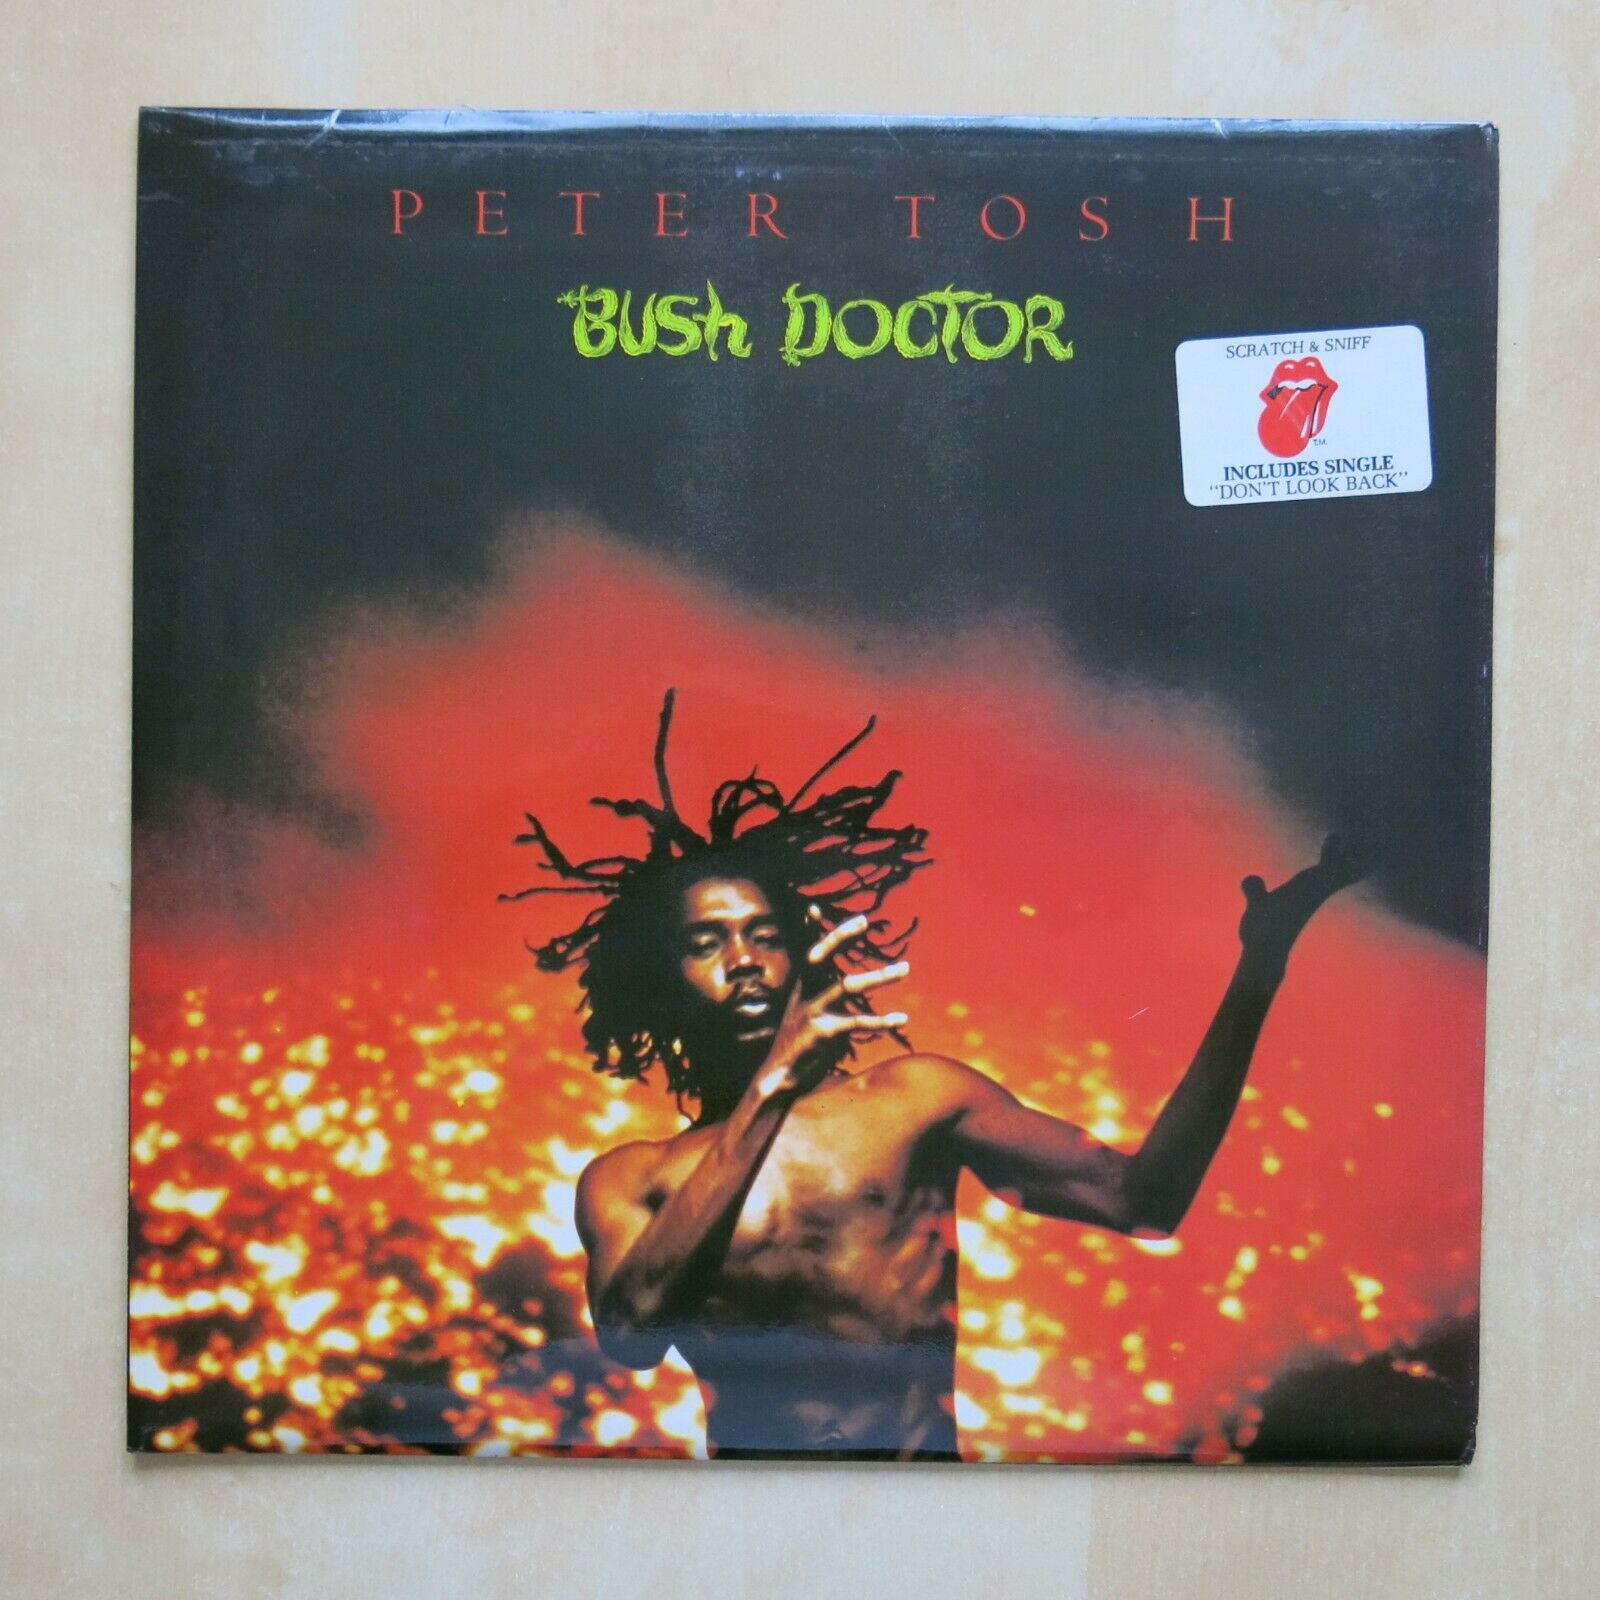 PETER TOSH Bush Doctor UK vinyl LP with sticker and inner sleeve Rolling Stones